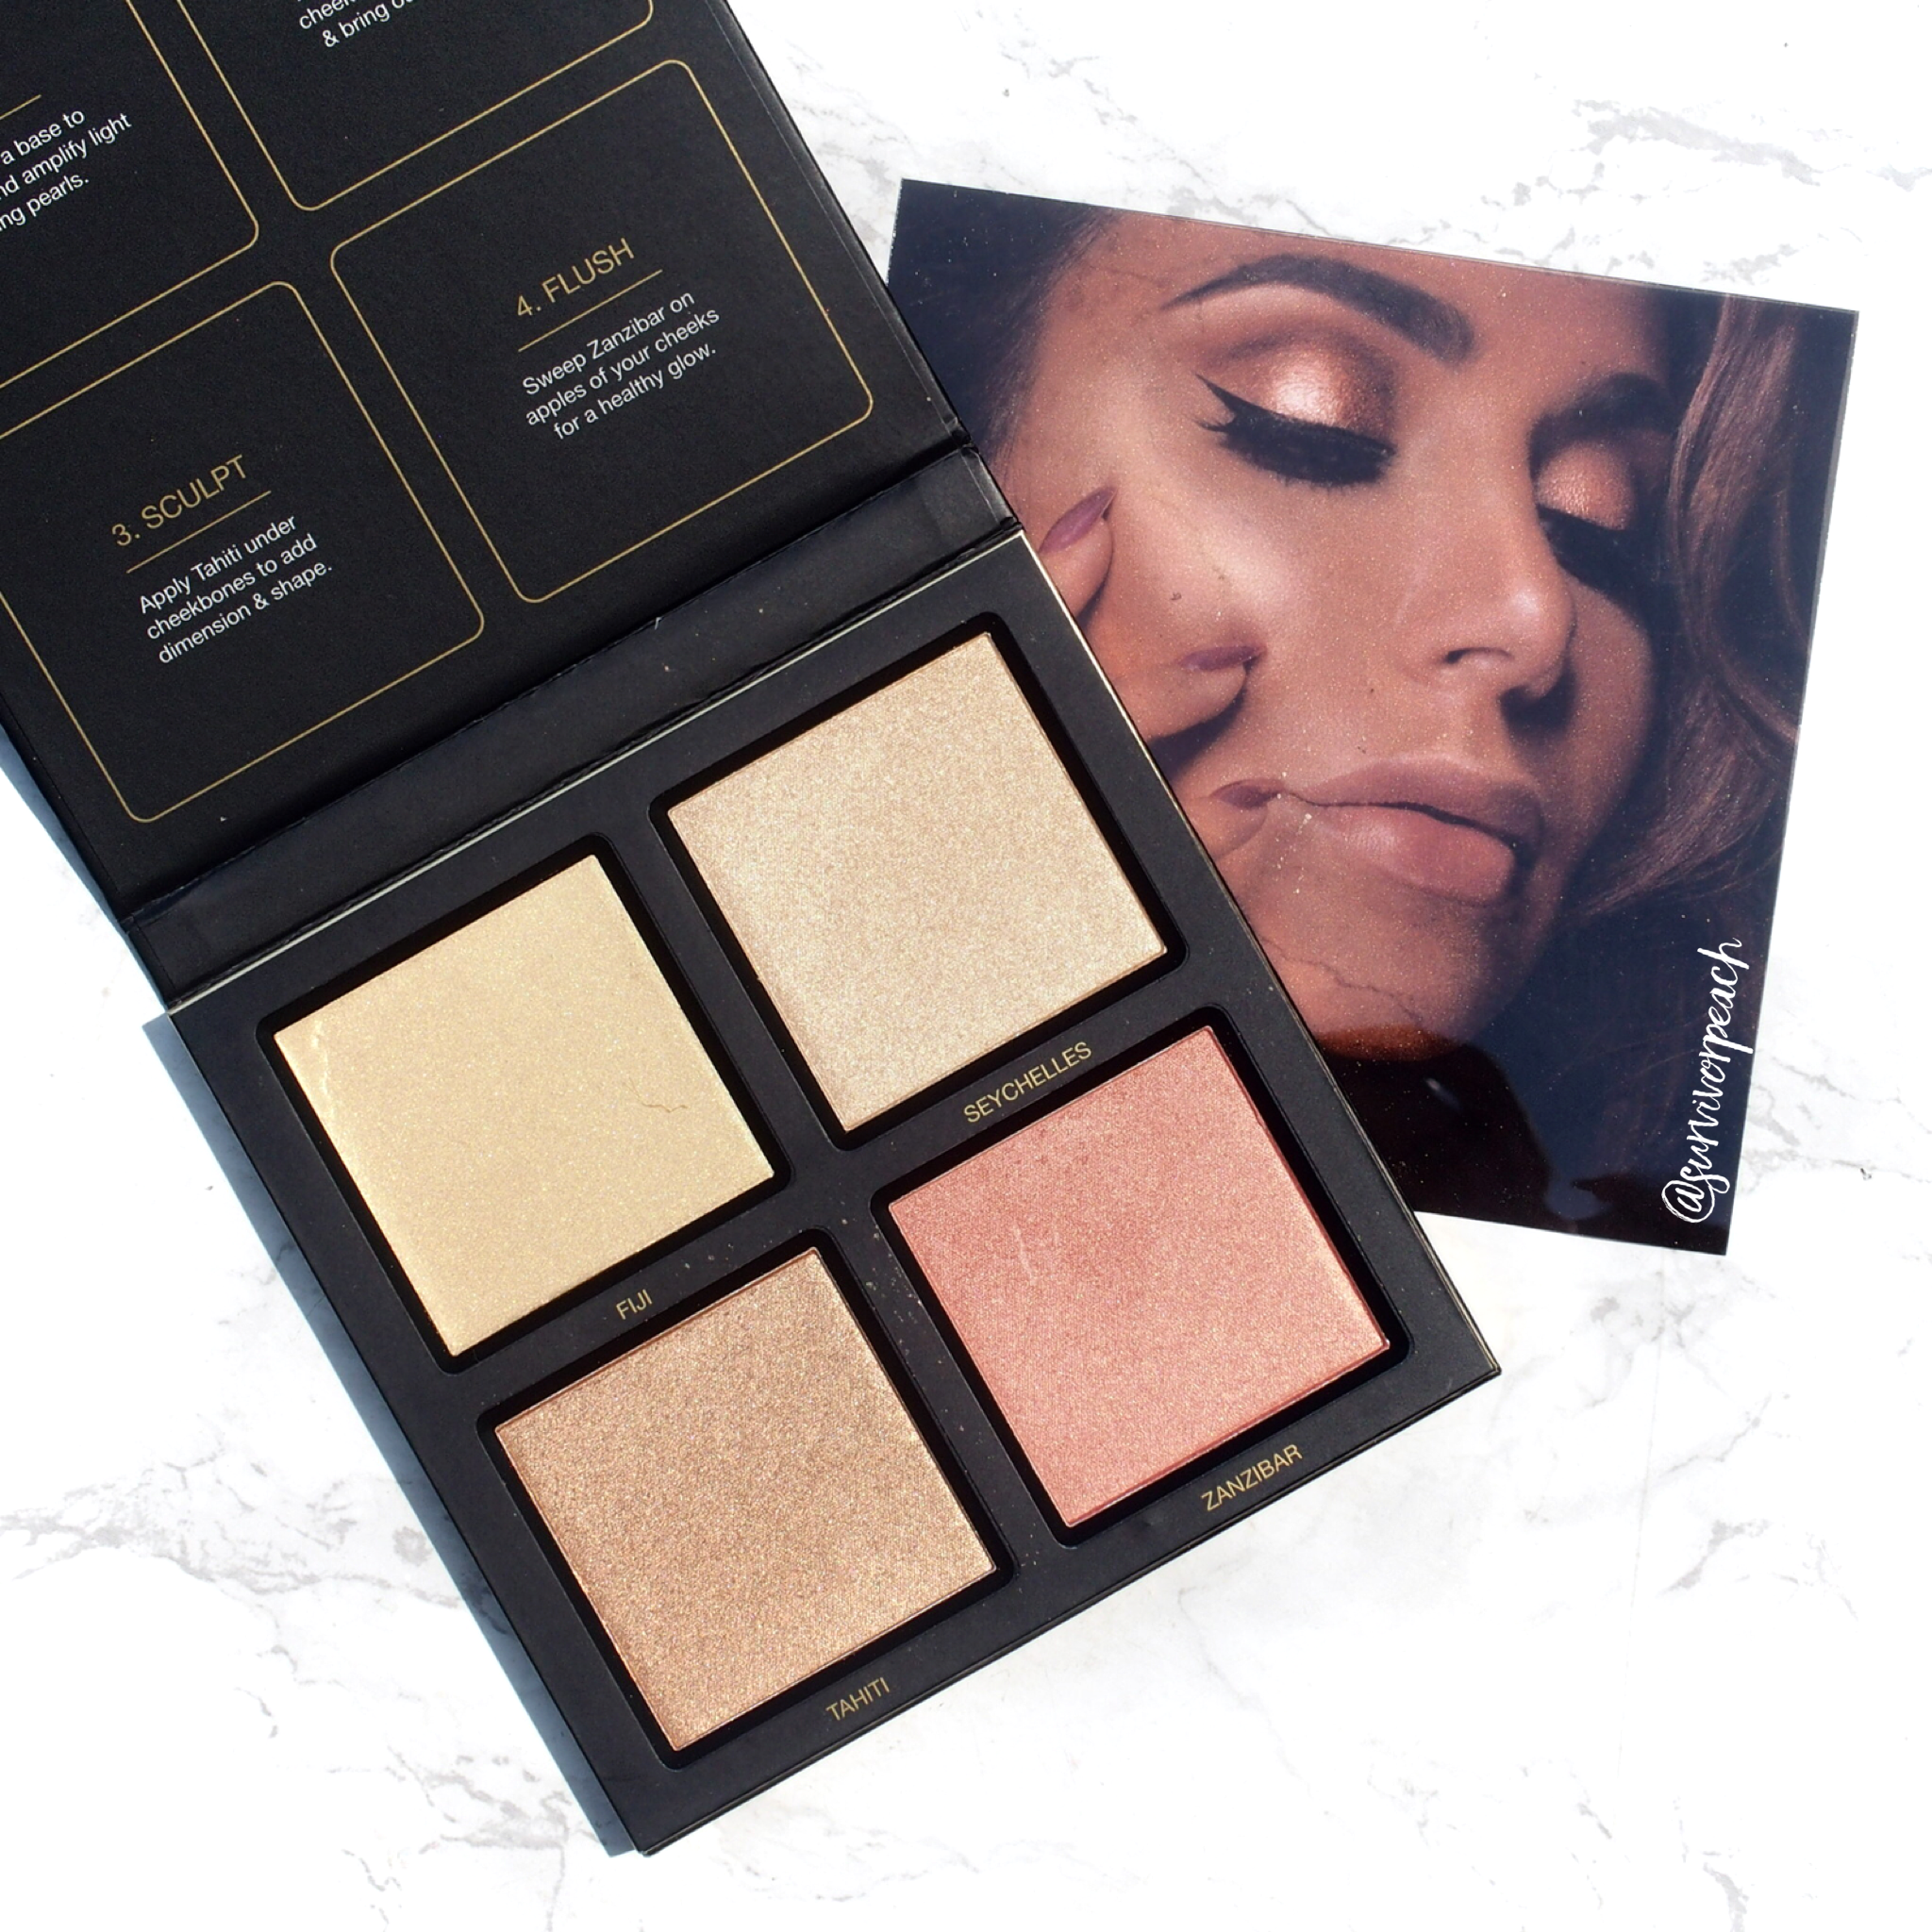 Huda Golden Sands 3D Highlighter Palette